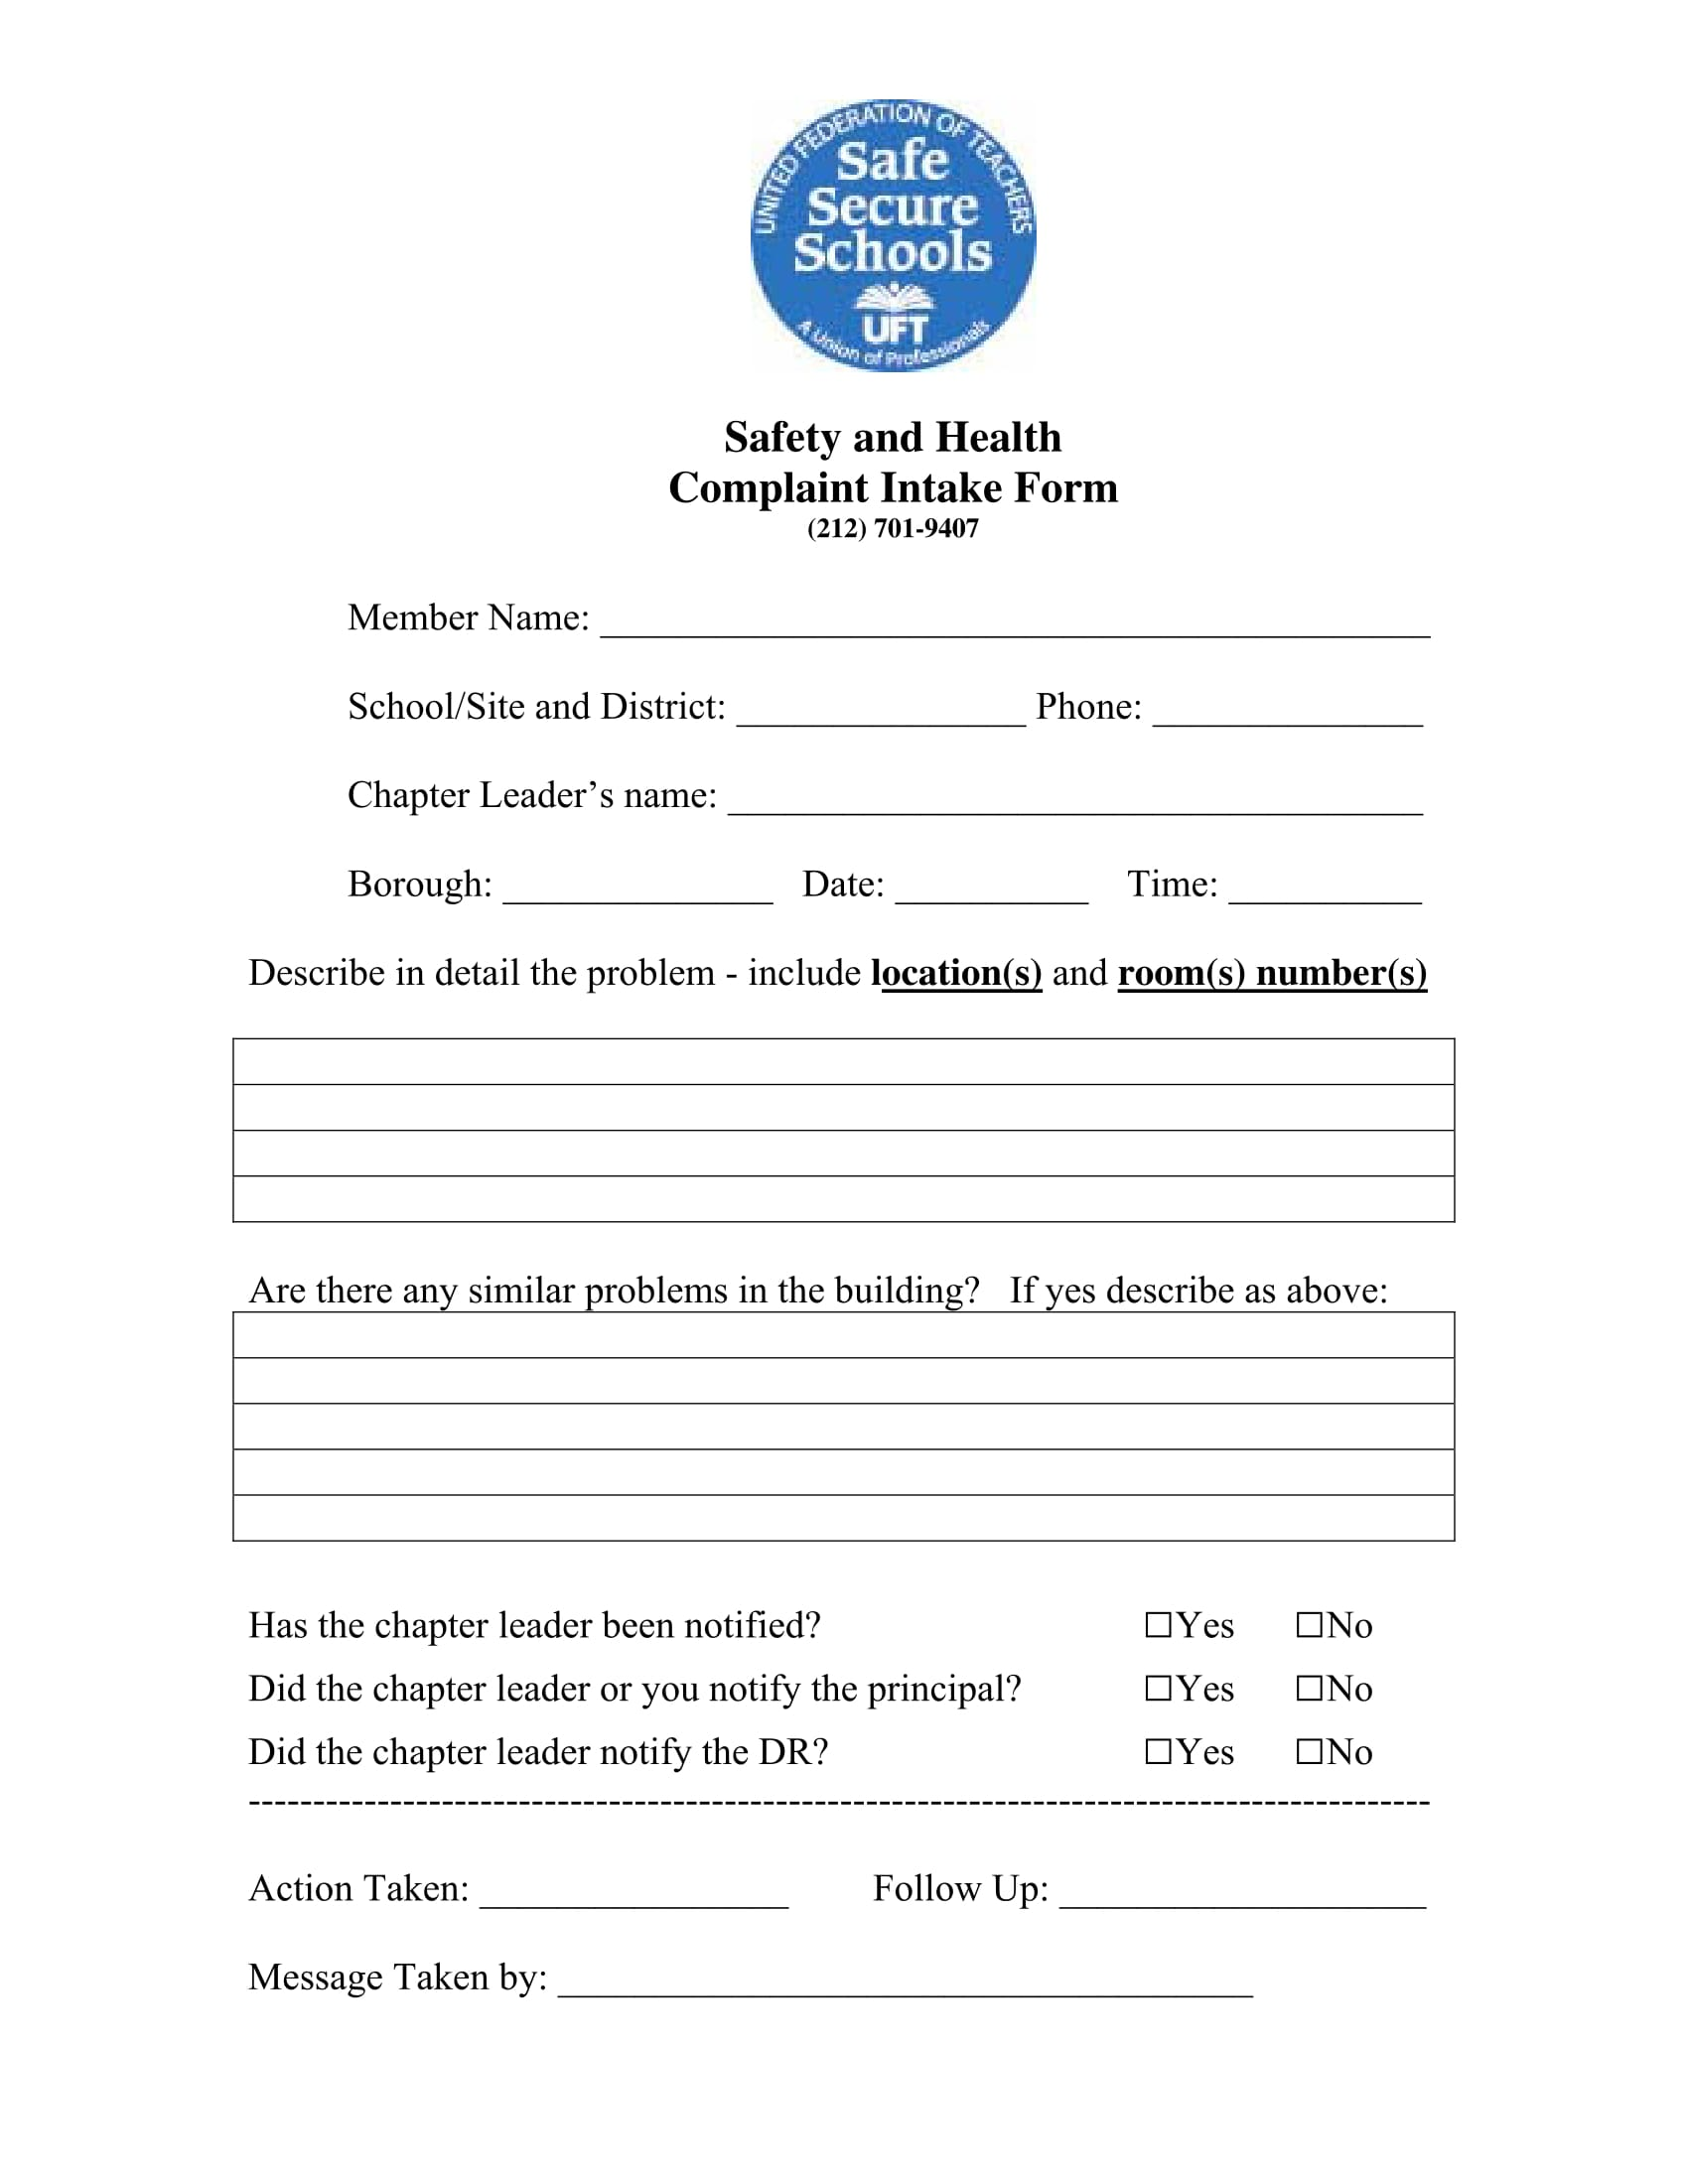 health complaint intake form 1